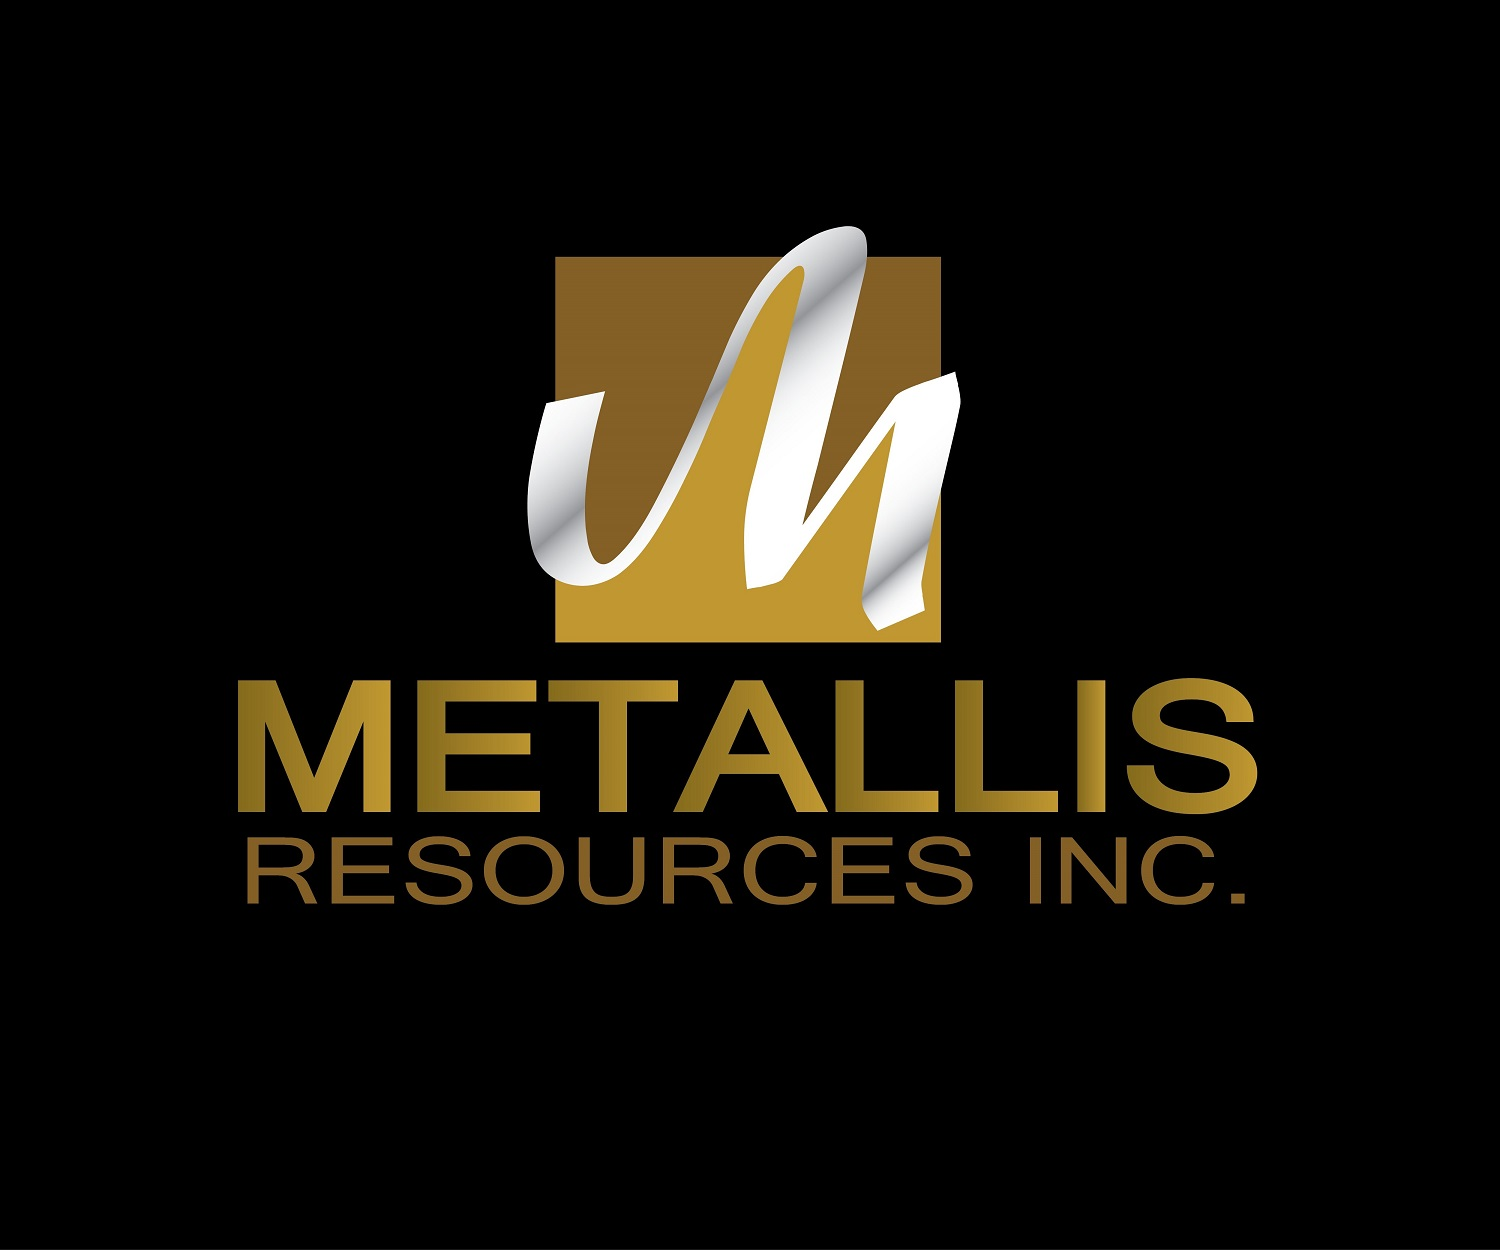 Logo Design by jhunzkie24 - Entry No. 69 in the Logo Design Contest Metallis Resources Inc Logo Design.